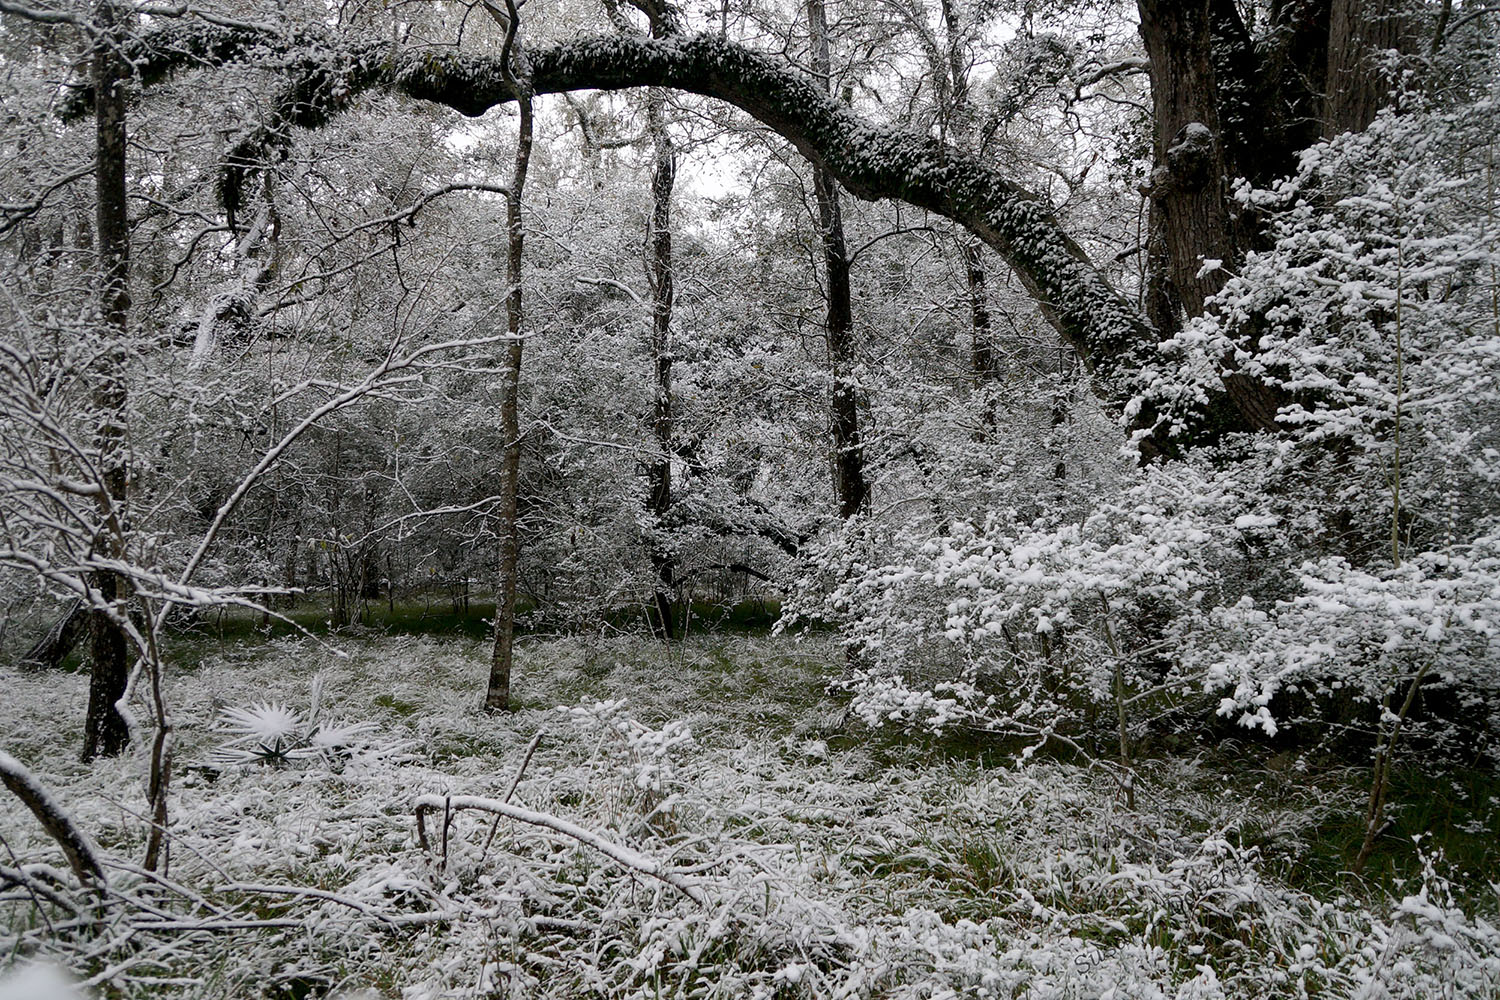 Outlined in Snow - Photo by Susan L. Davenport